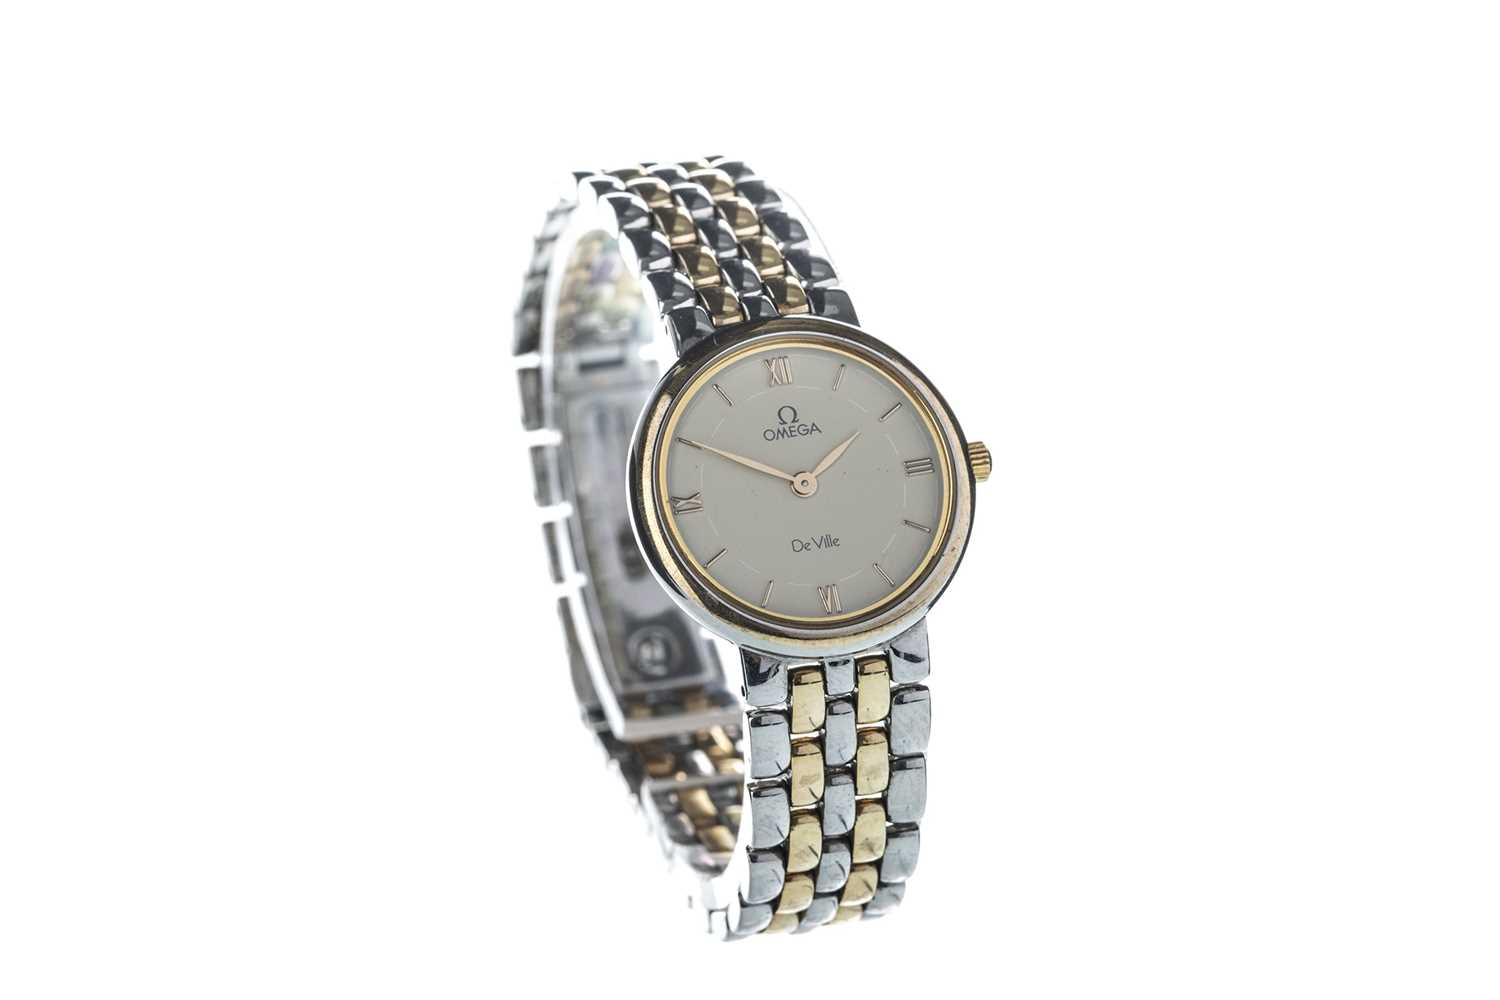 Lot 704 - A LADY'S OMEGA DE VILLE BI COLOUR STAINLESS STEEL QUARTZ WRIST WATCH